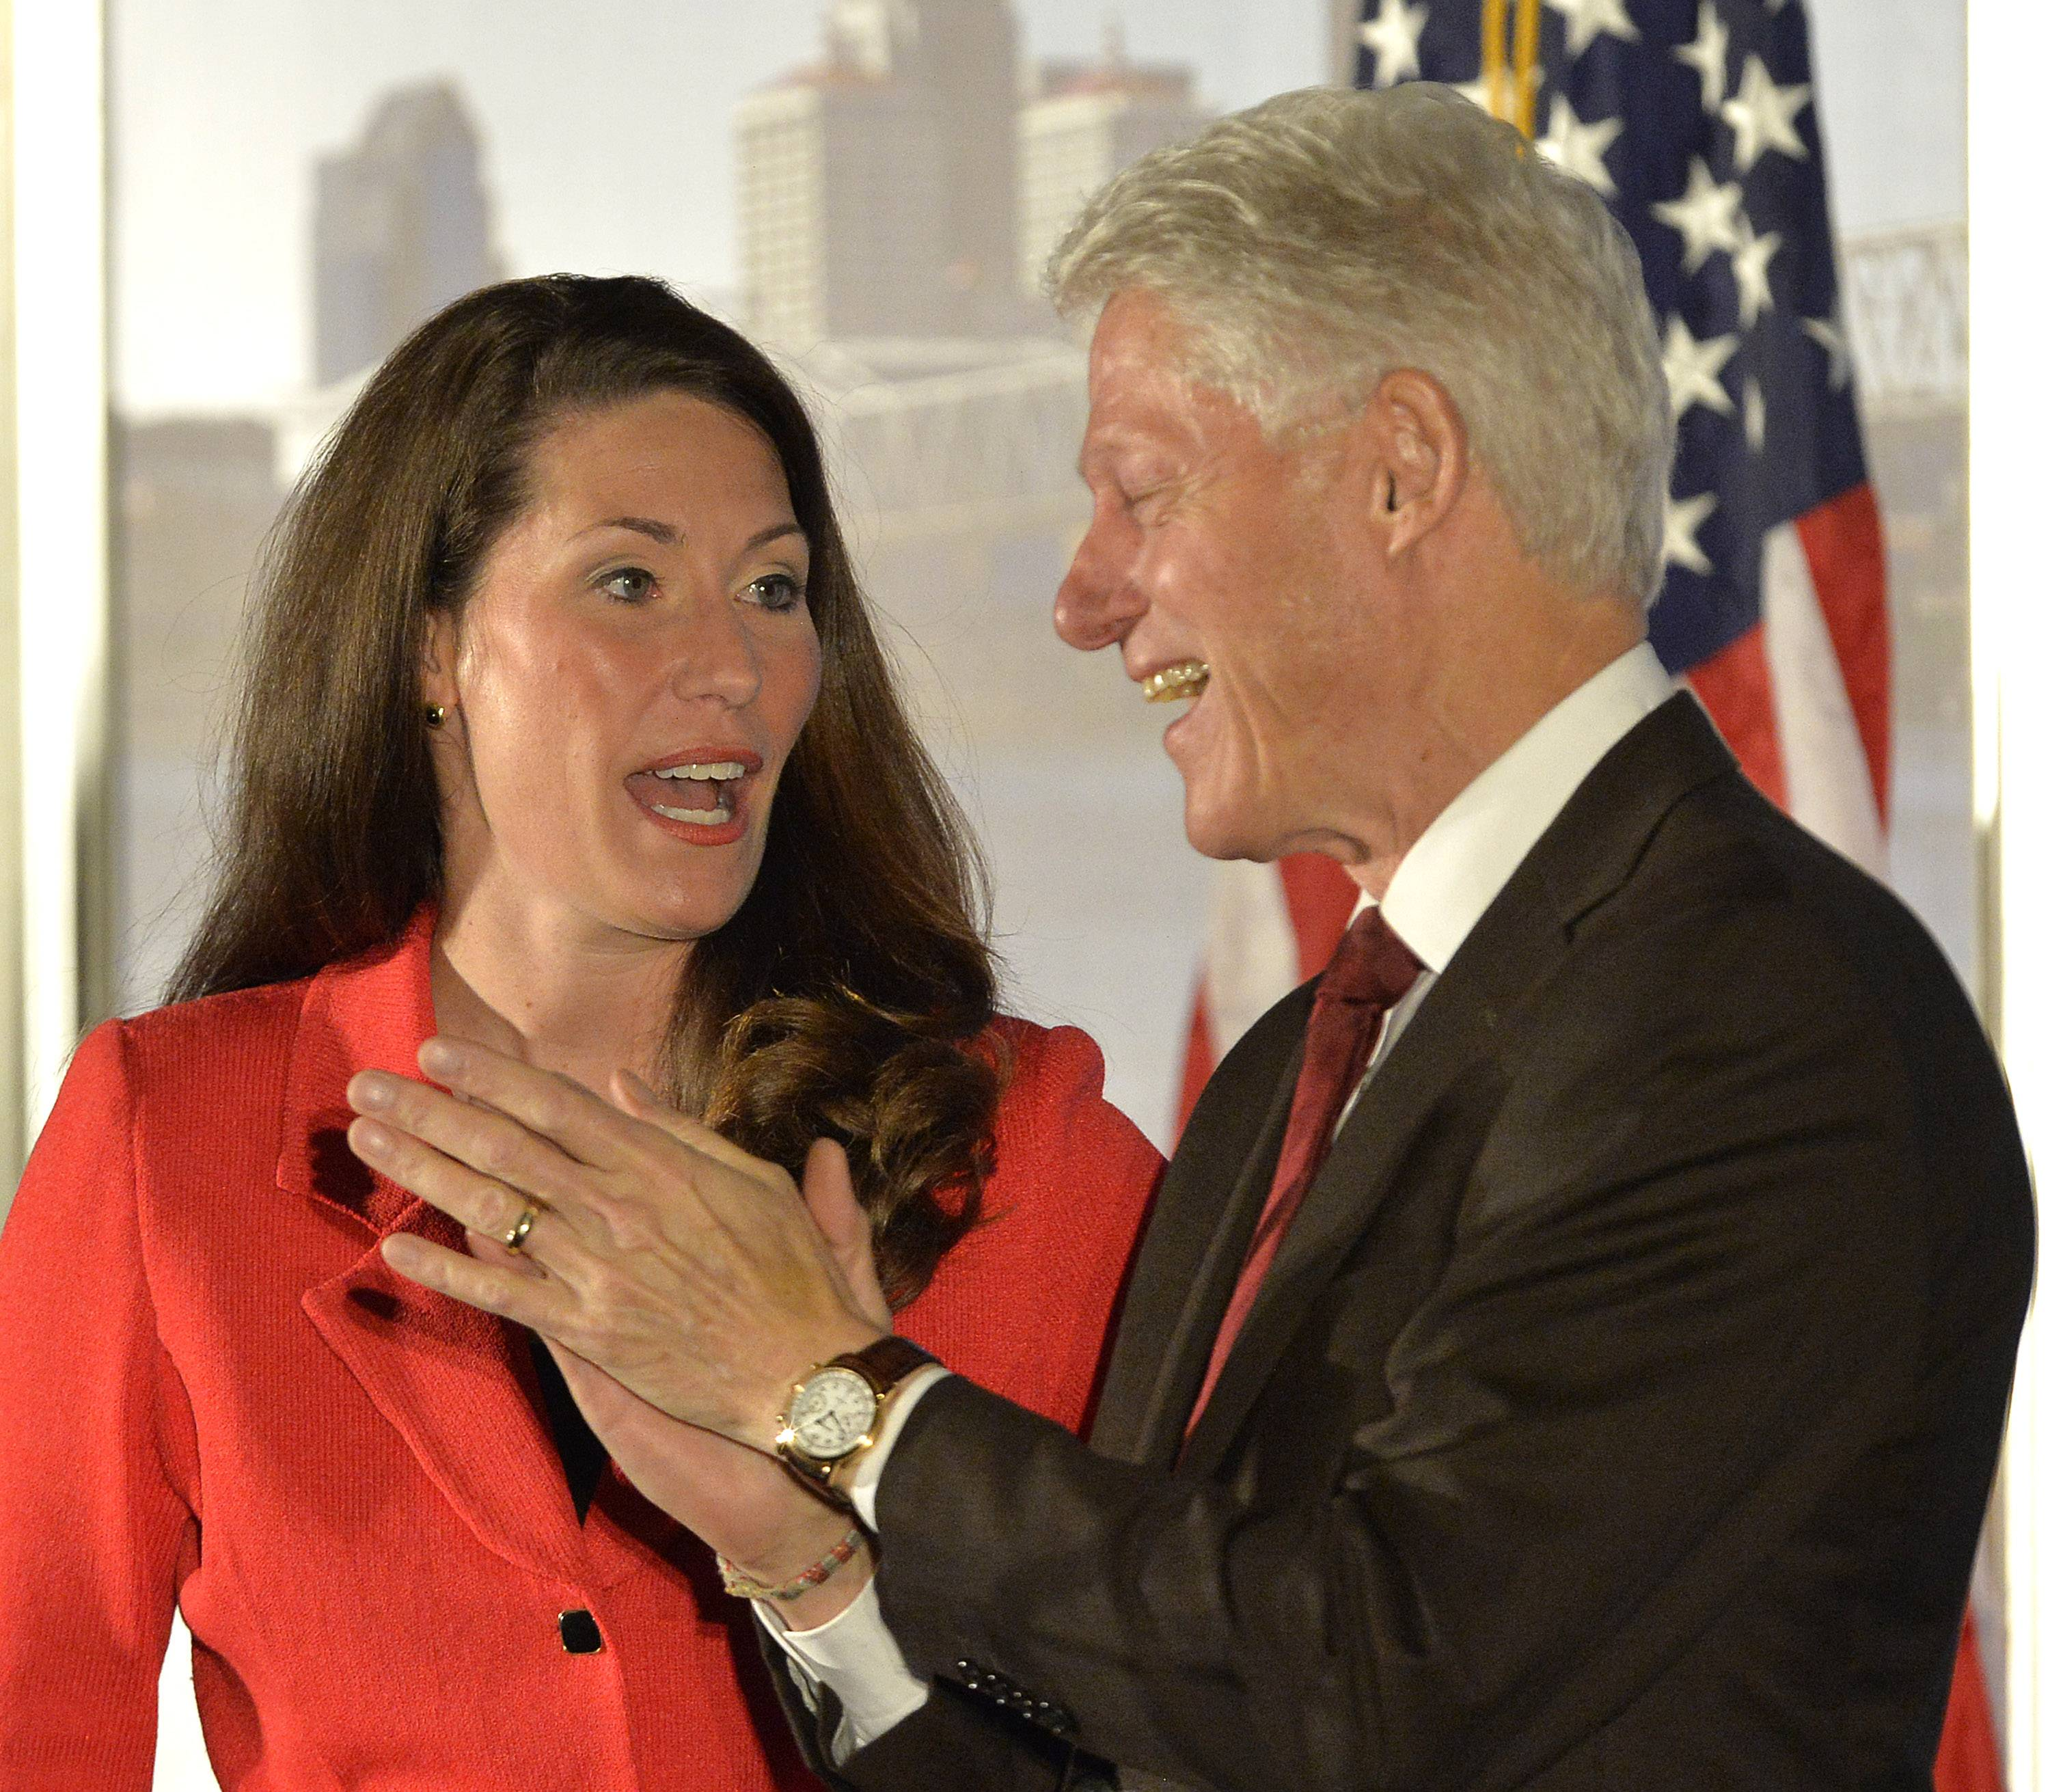 Democratic Senate challenger Alison Lundergan Grimes left, speaks with former President Bill Clinton as they are introduced at a fundraiser at the Galt House Hotel, Tuesday, Feb. 25, 2014, in Louisville, Ky.